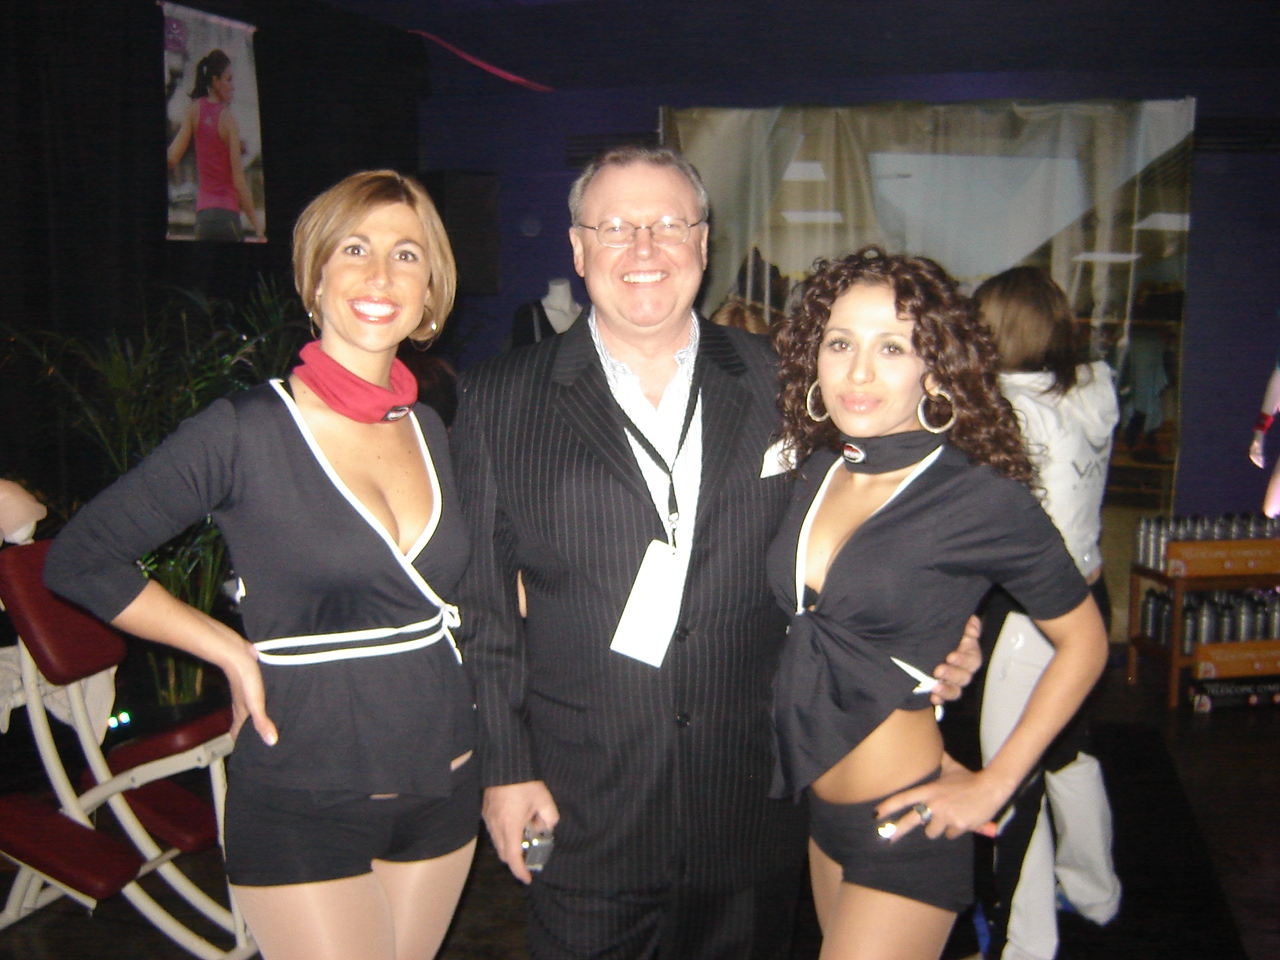 nov.08_-_montreal_-_maxim_grey_cup_party_018